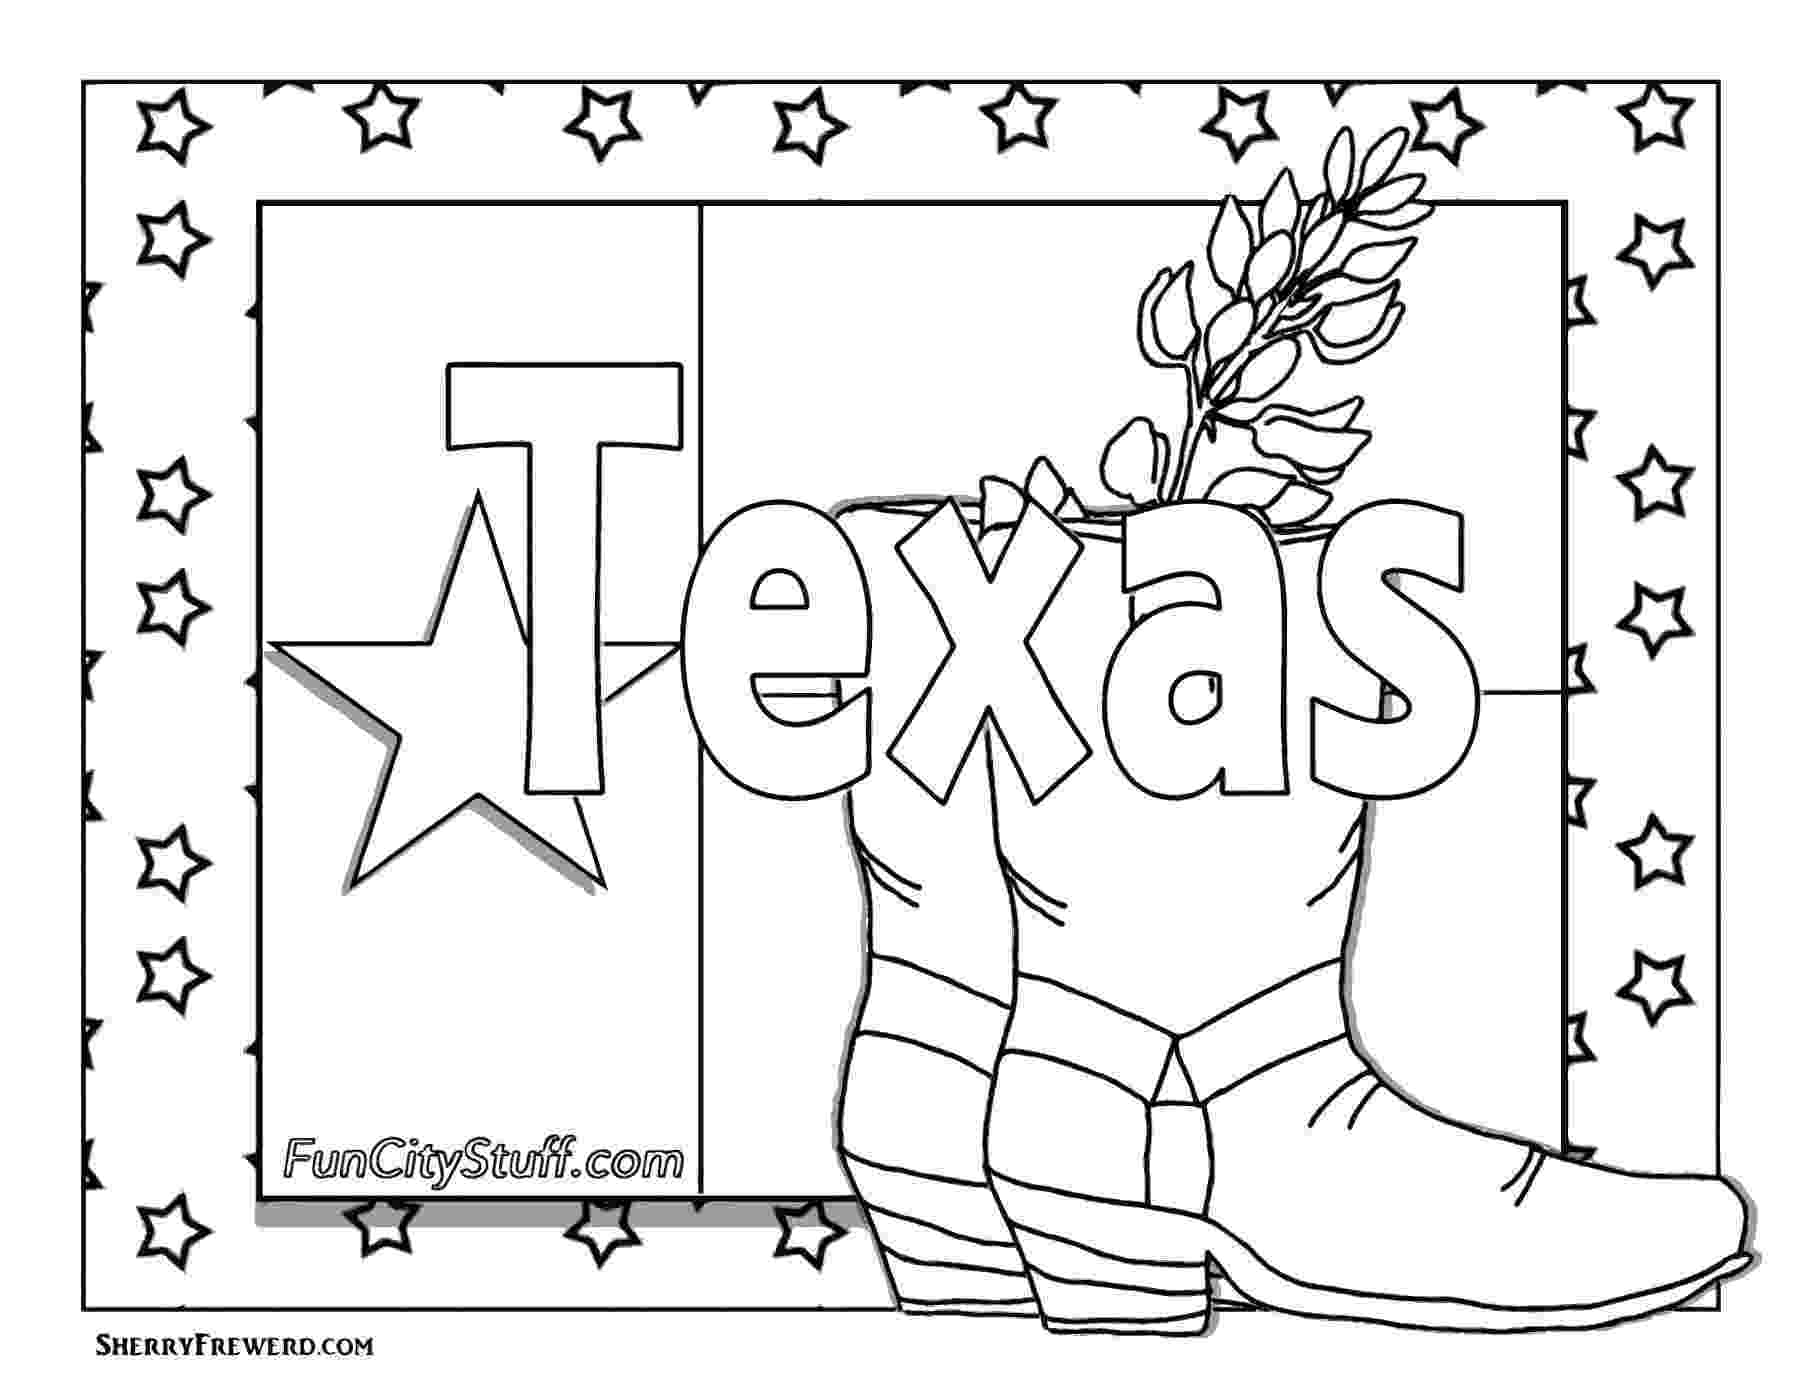 texas coloring pages 1000 images about texas symbols on pinterest cactus pages coloring texas